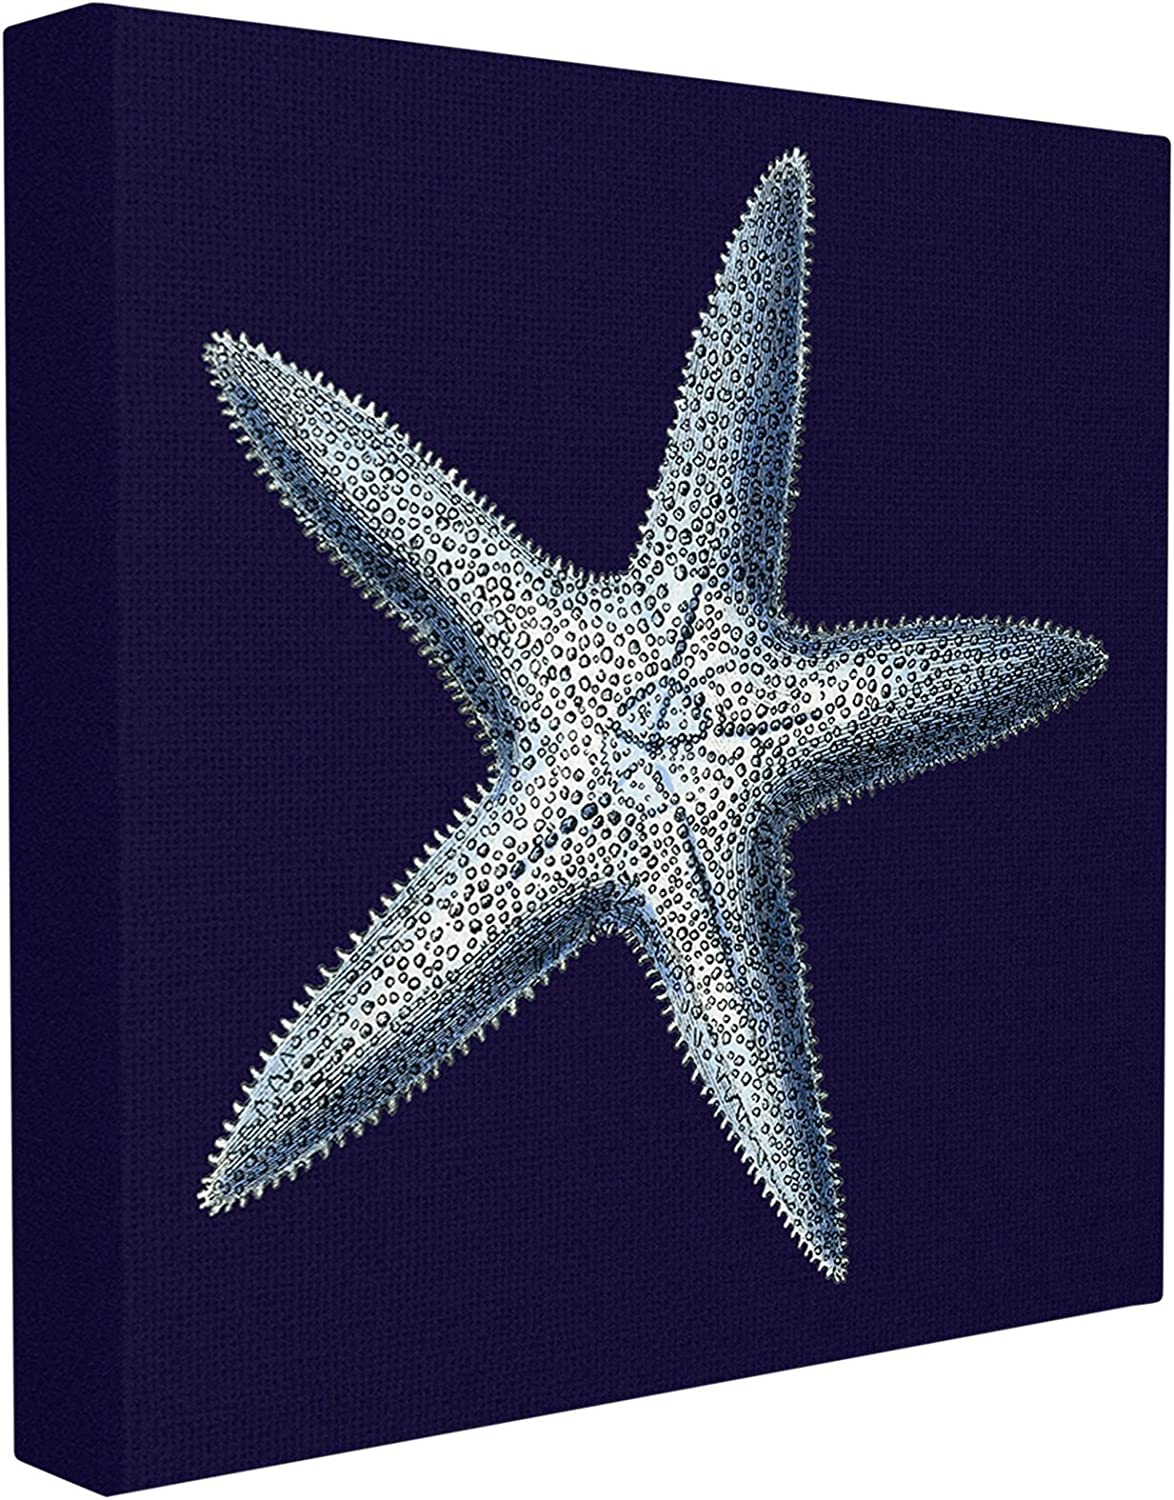 Stupell Home Décor Distressed Navy and White Starfish Stretched Canvas Wall Art, 17 x 1.5 x 17, Proudly Made in USA